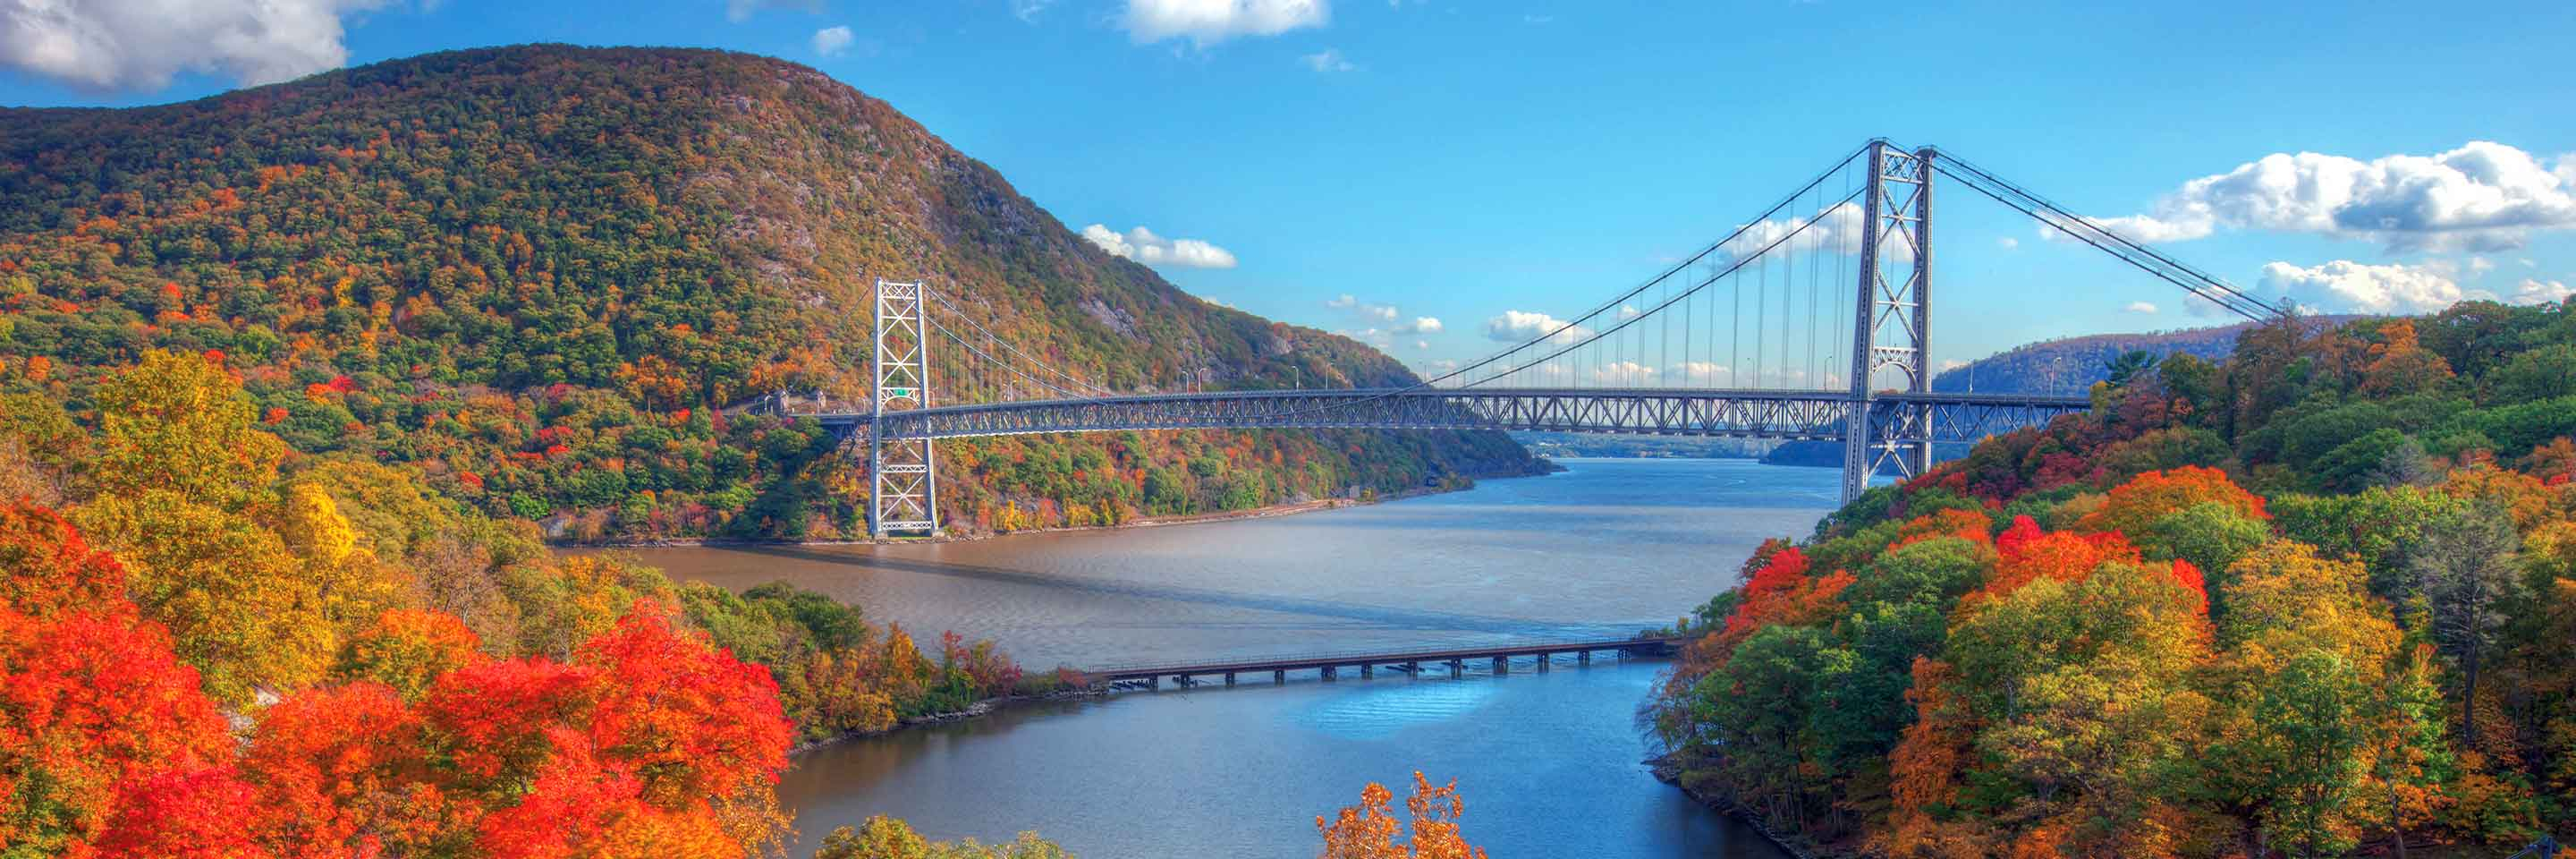 Hudson River Cruises out of New York   American Cruise Lines